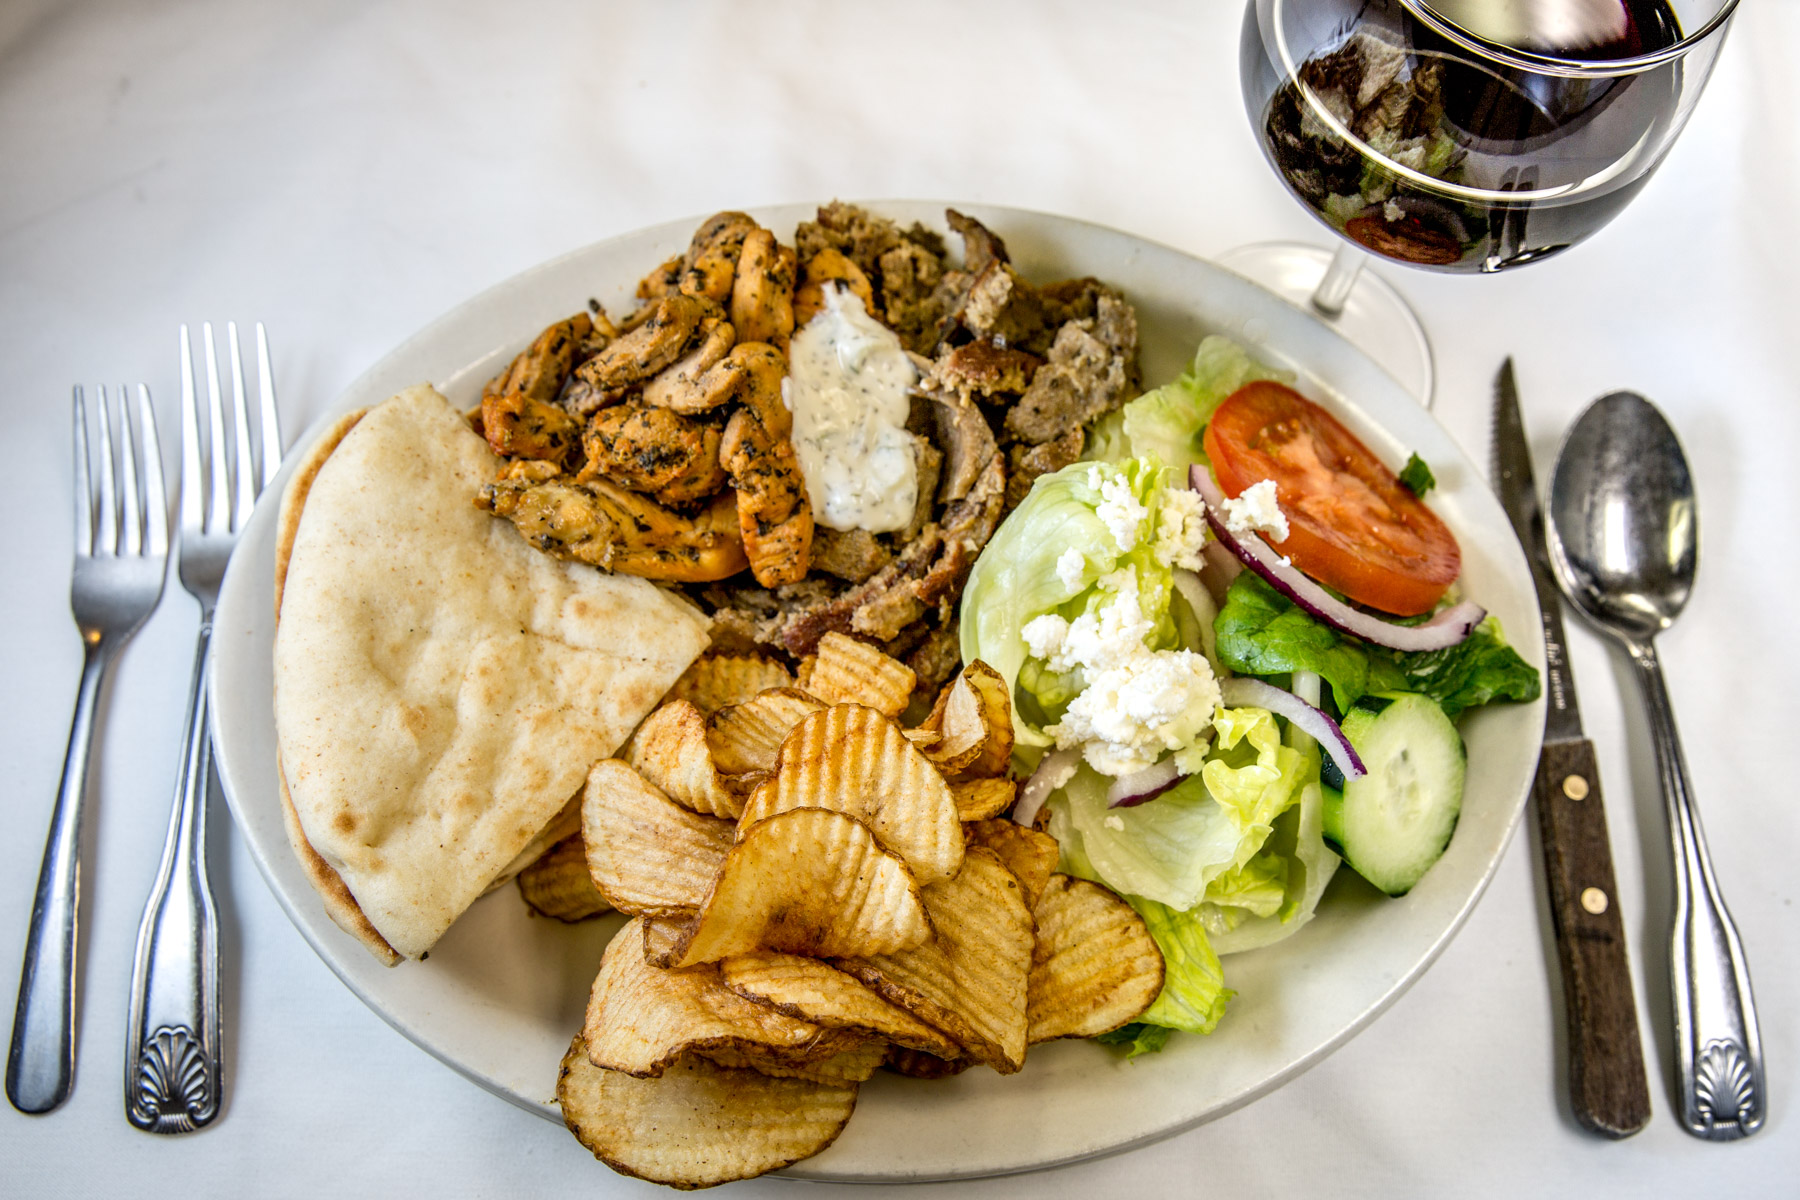 Chicken and Gyro Plate.jpg